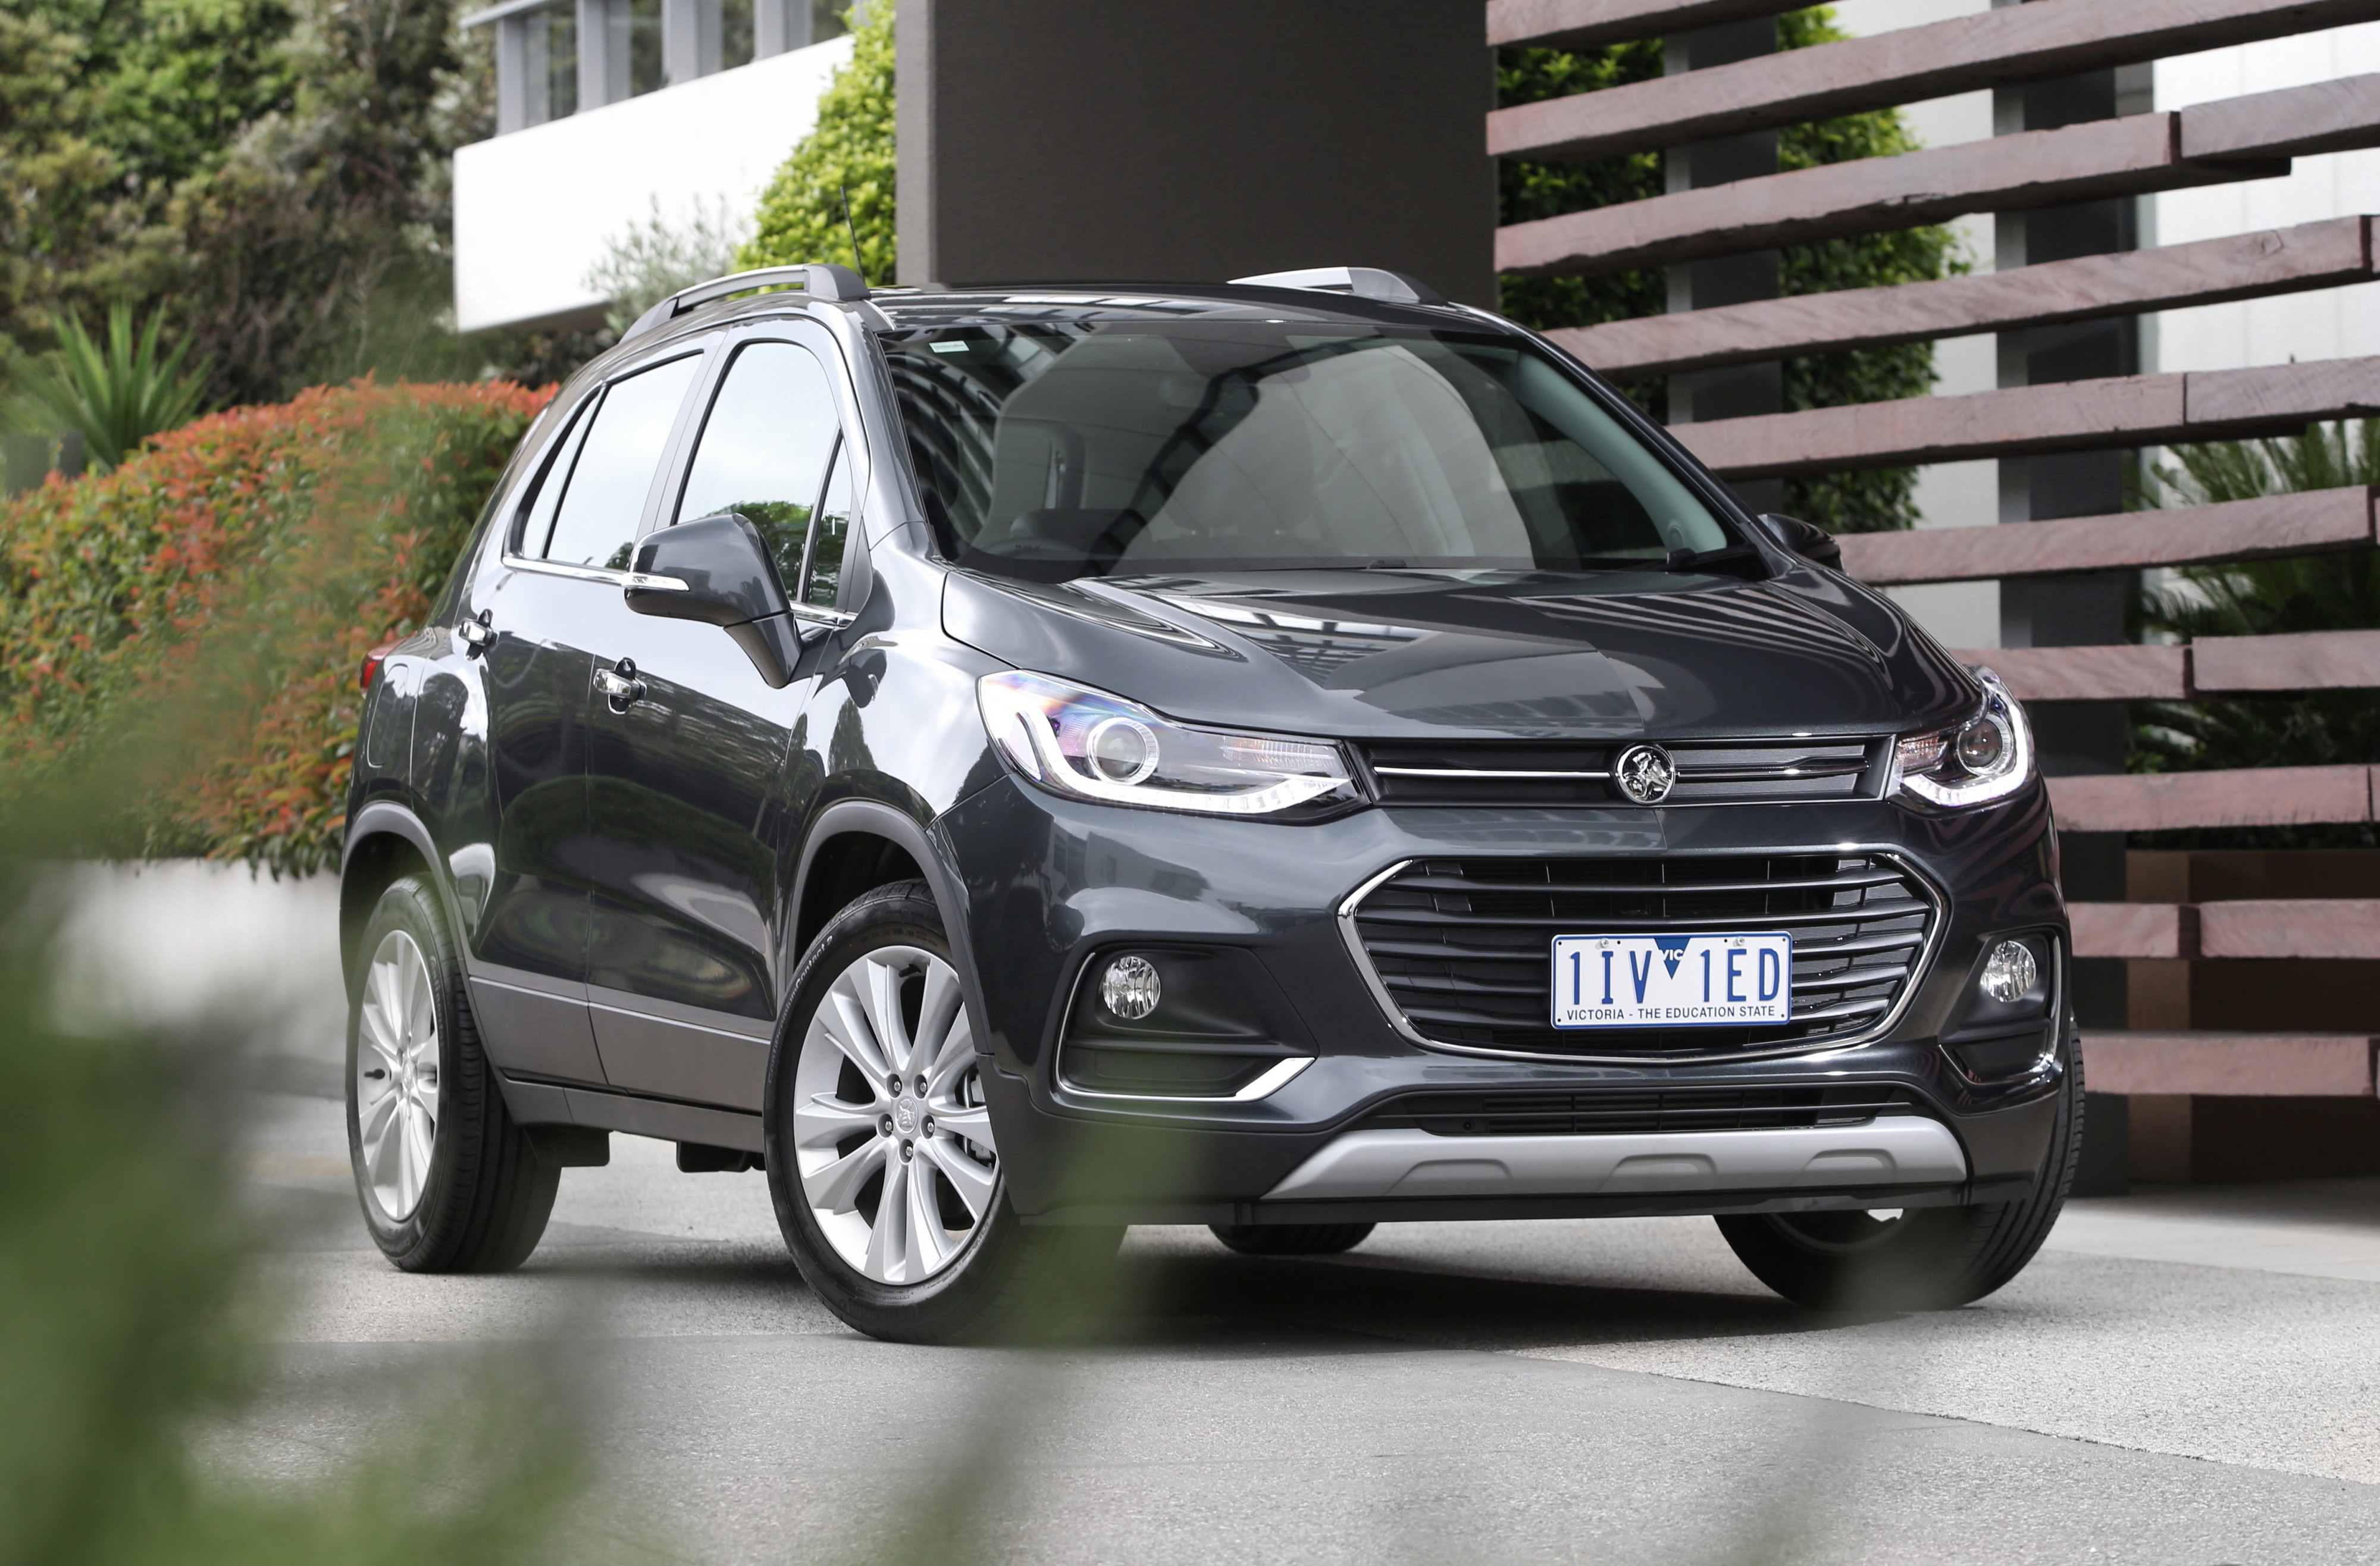 2017 holden trax now available to order starts from aud 23 990 autoevolution. Black Bedroom Furniture Sets. Home Design Ideas